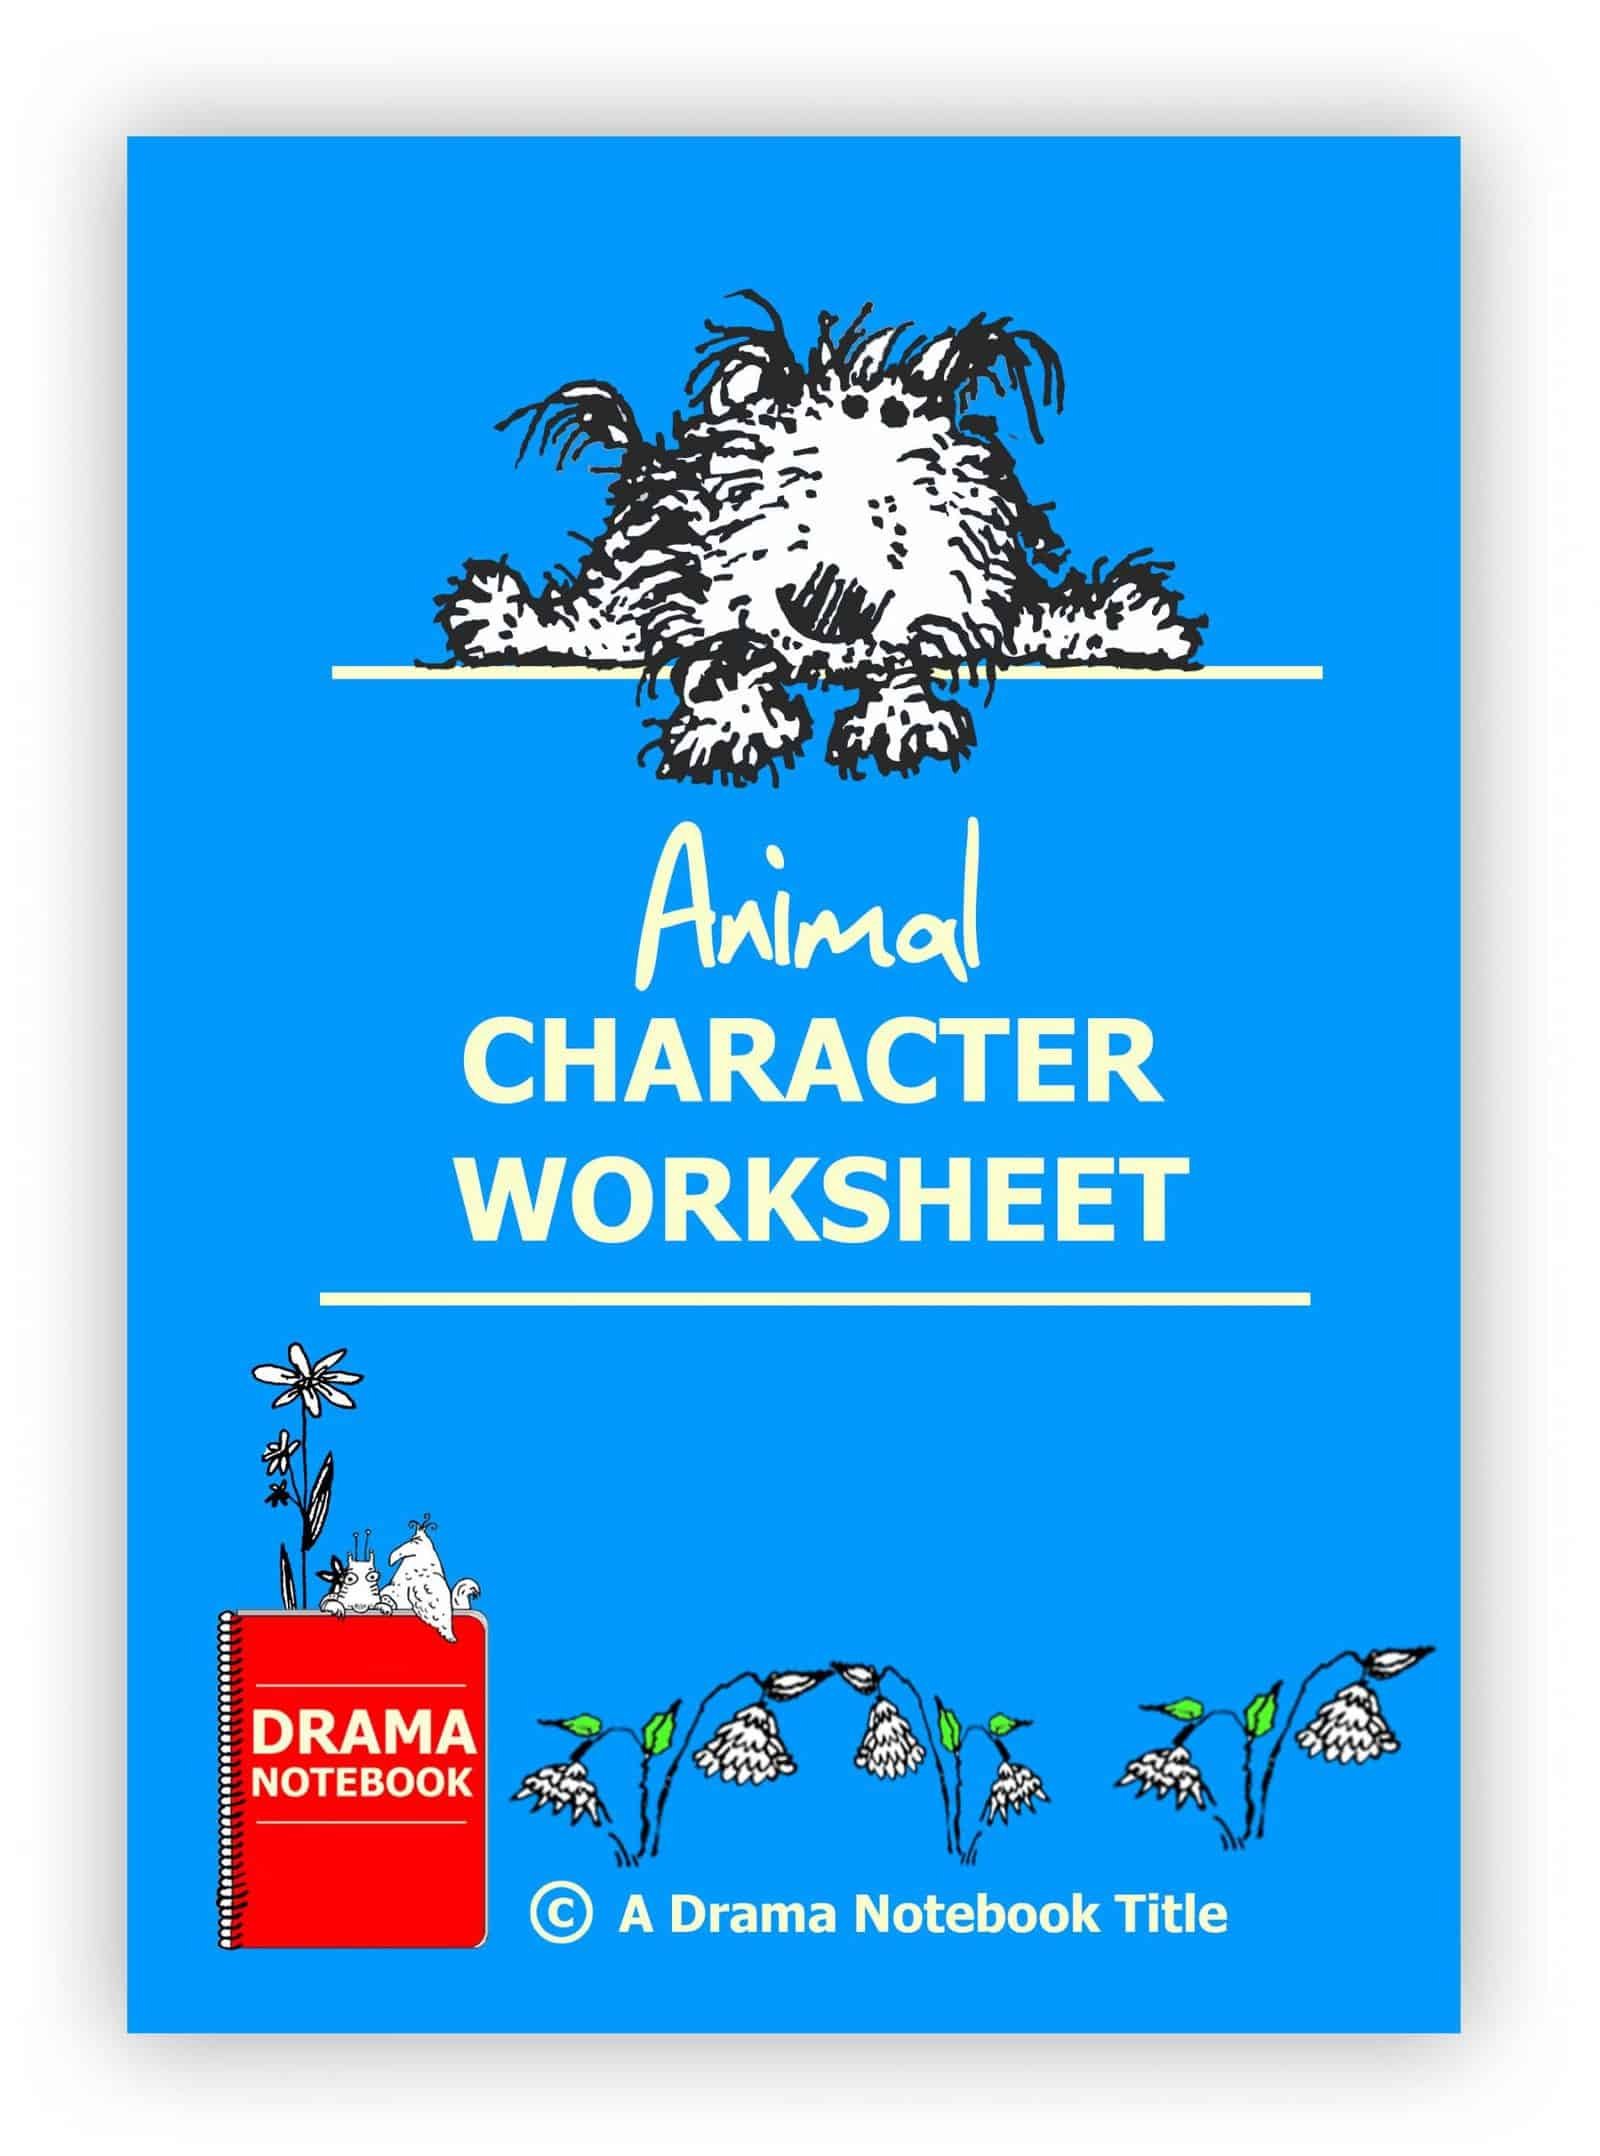 Animal Character Worksheet for Drama Class